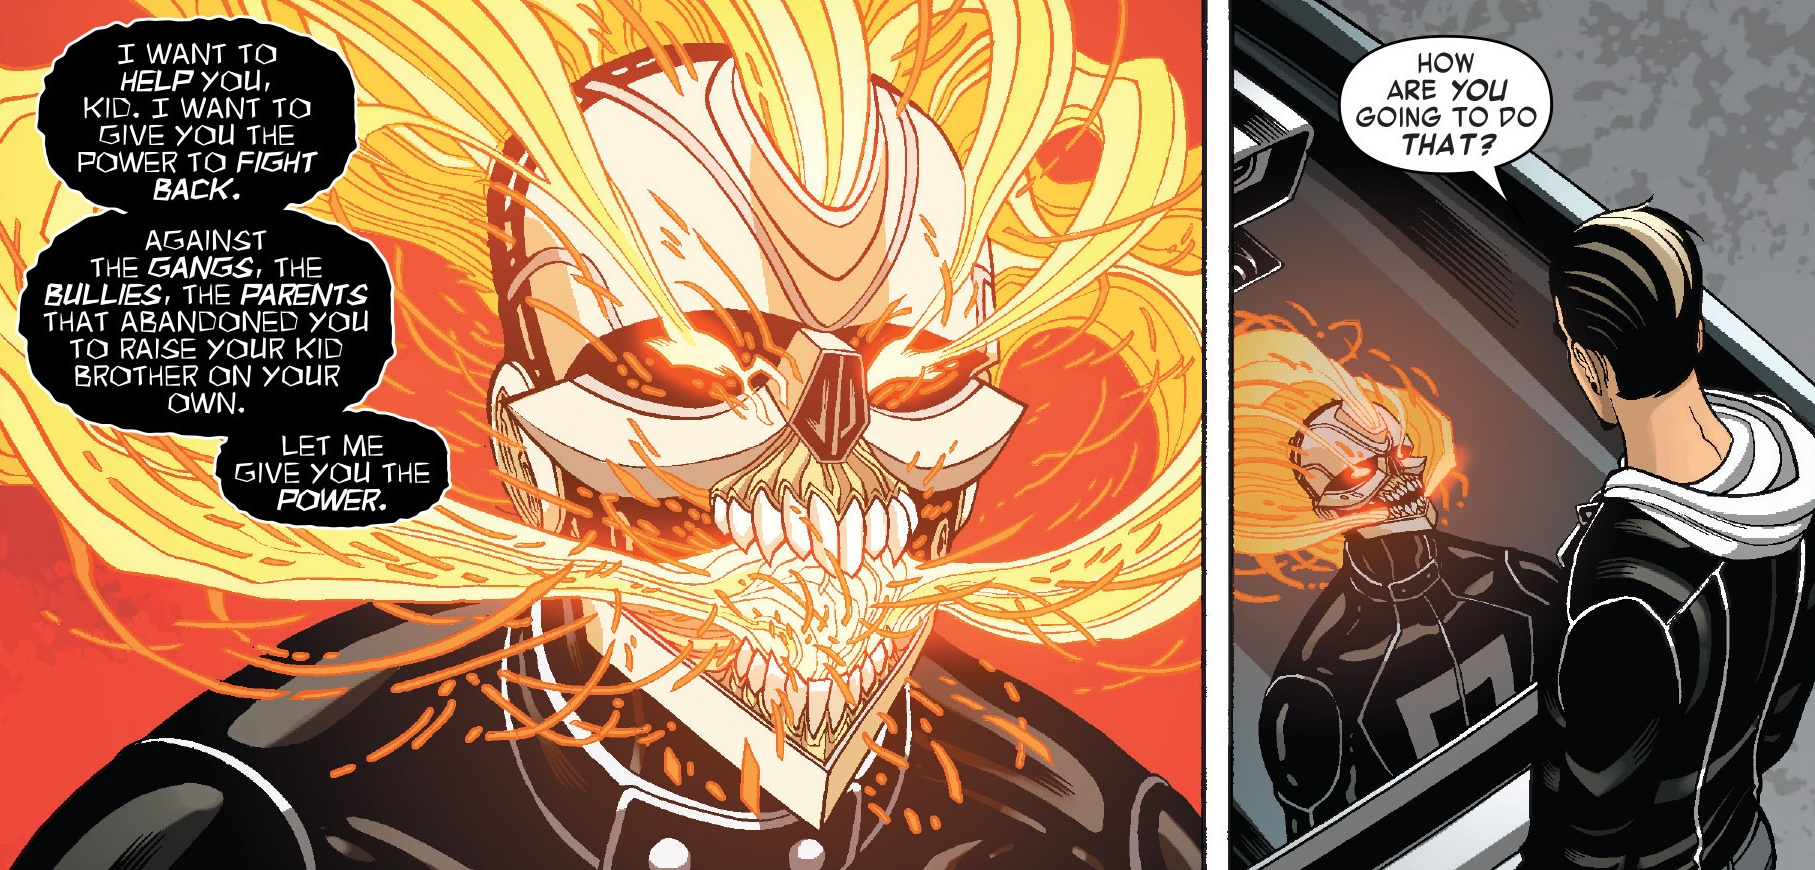 robbie-an-la-mechanic-gets-acquainted-with-his-alter-ego-ghost-rider----the-spirit-of-a-serial-k.jpeg